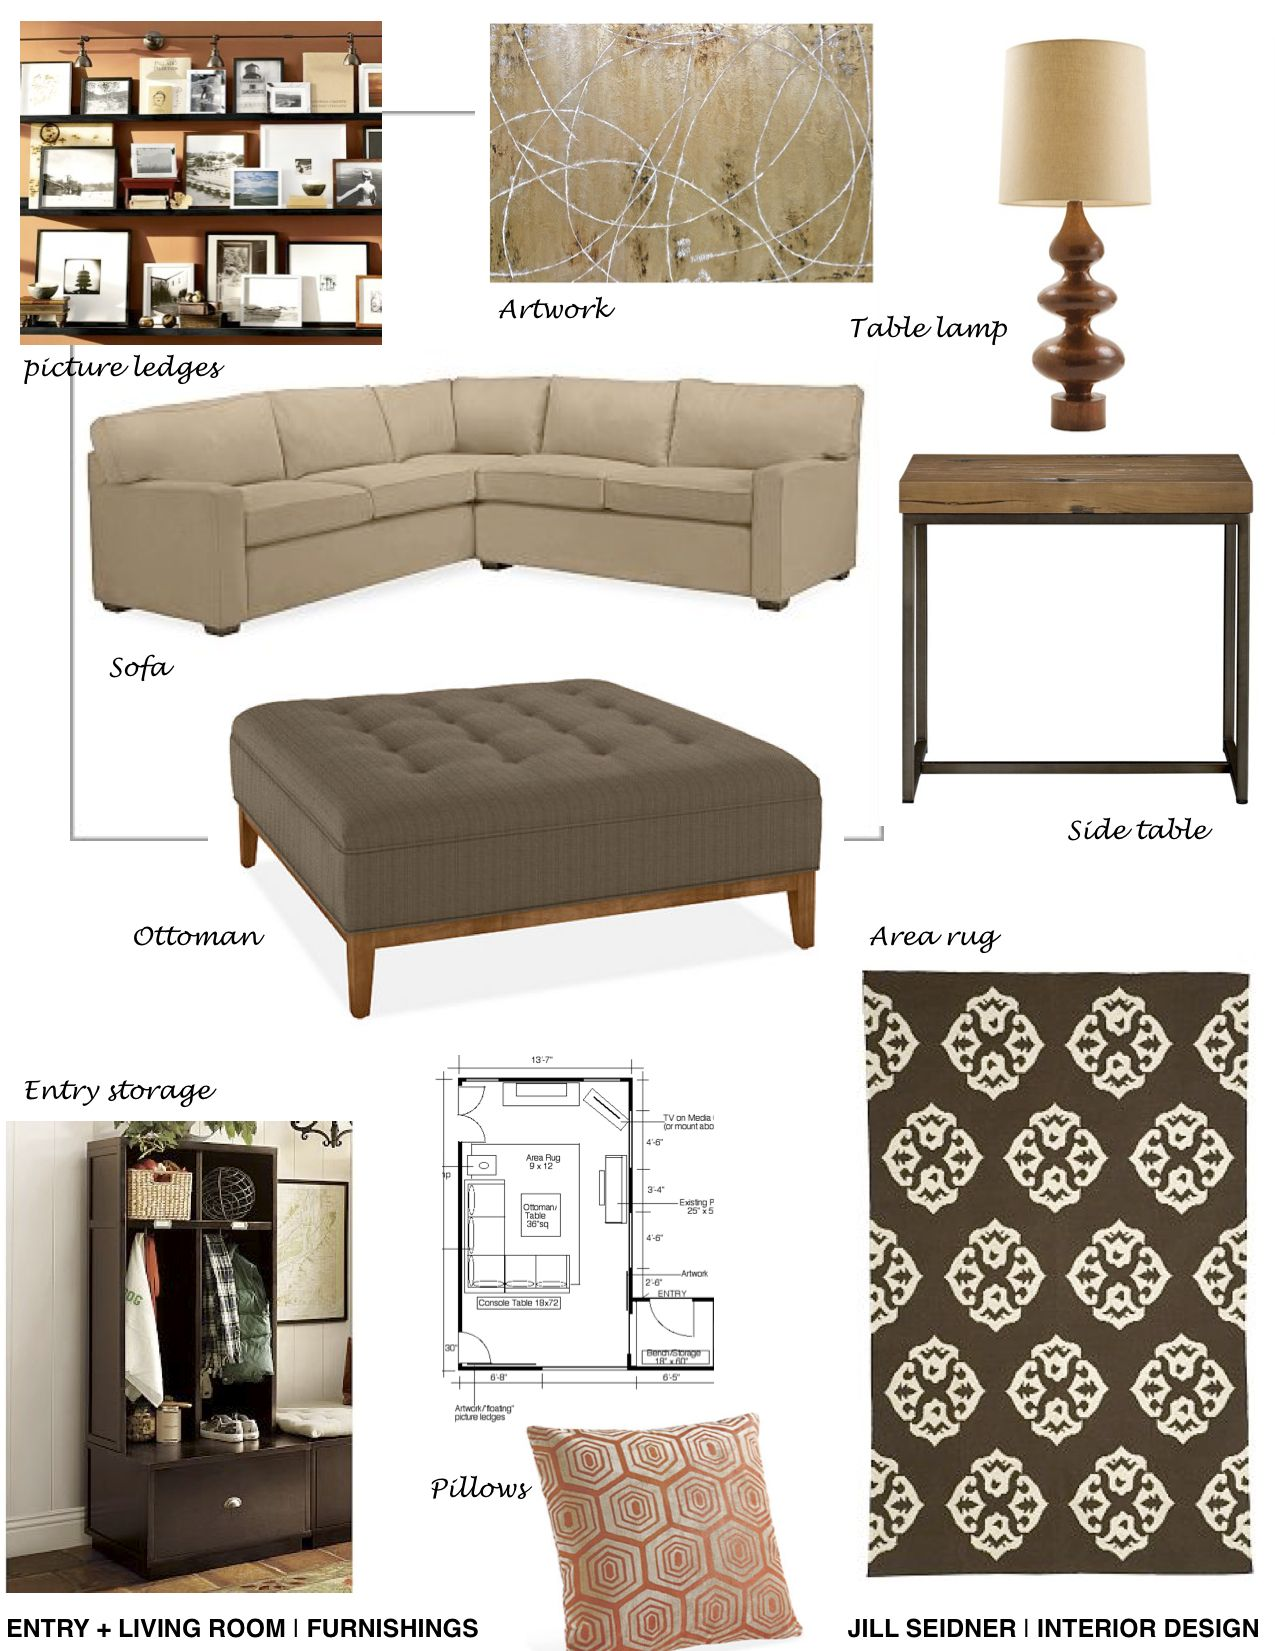 Furnishings Concept Board For Living Room With Images